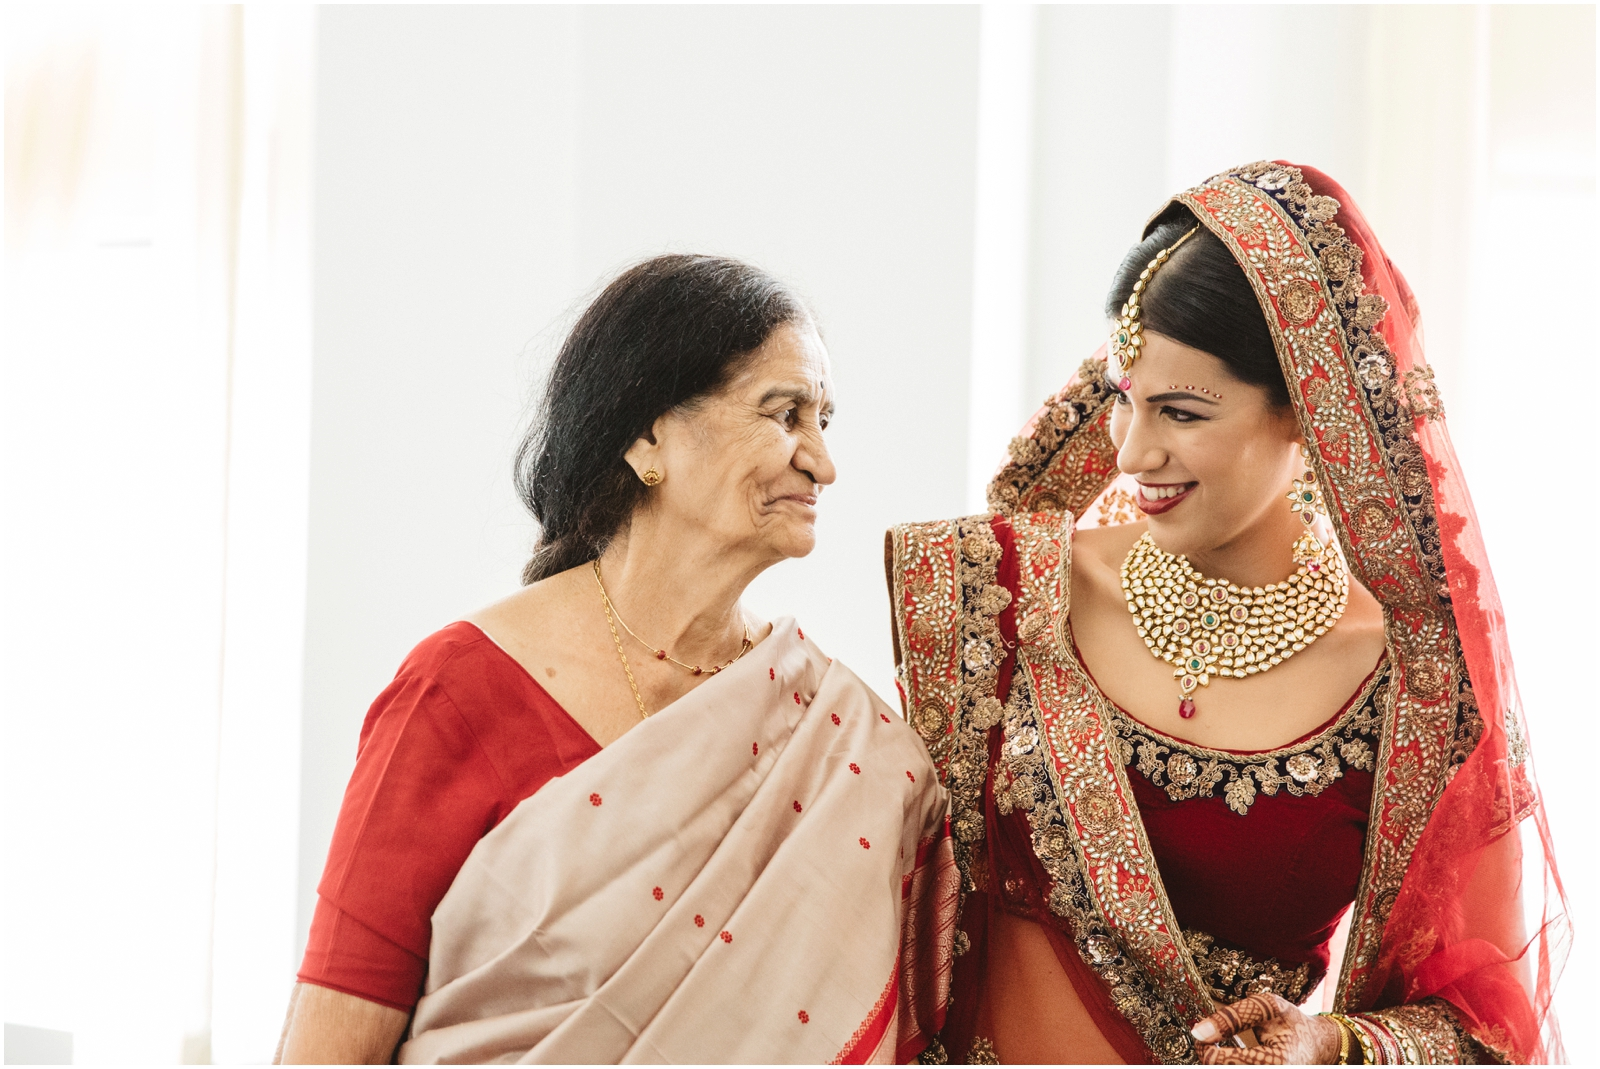 south_asian_wedding_photographer-31.jpg